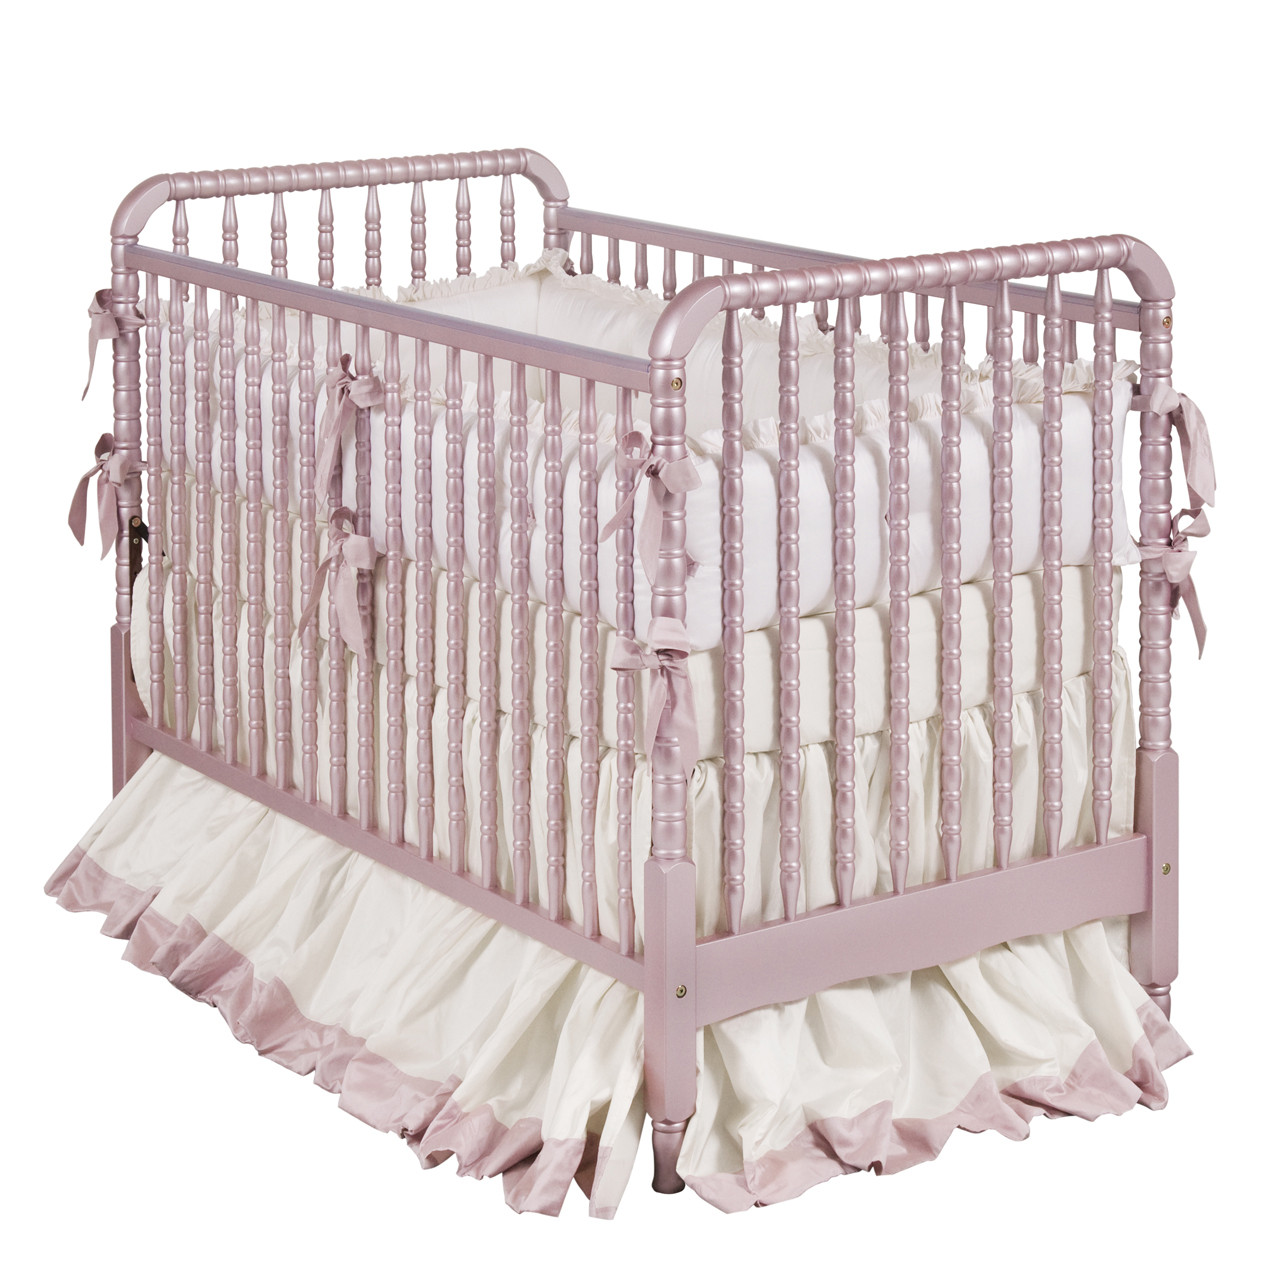 Jenny lind crib afk furniture